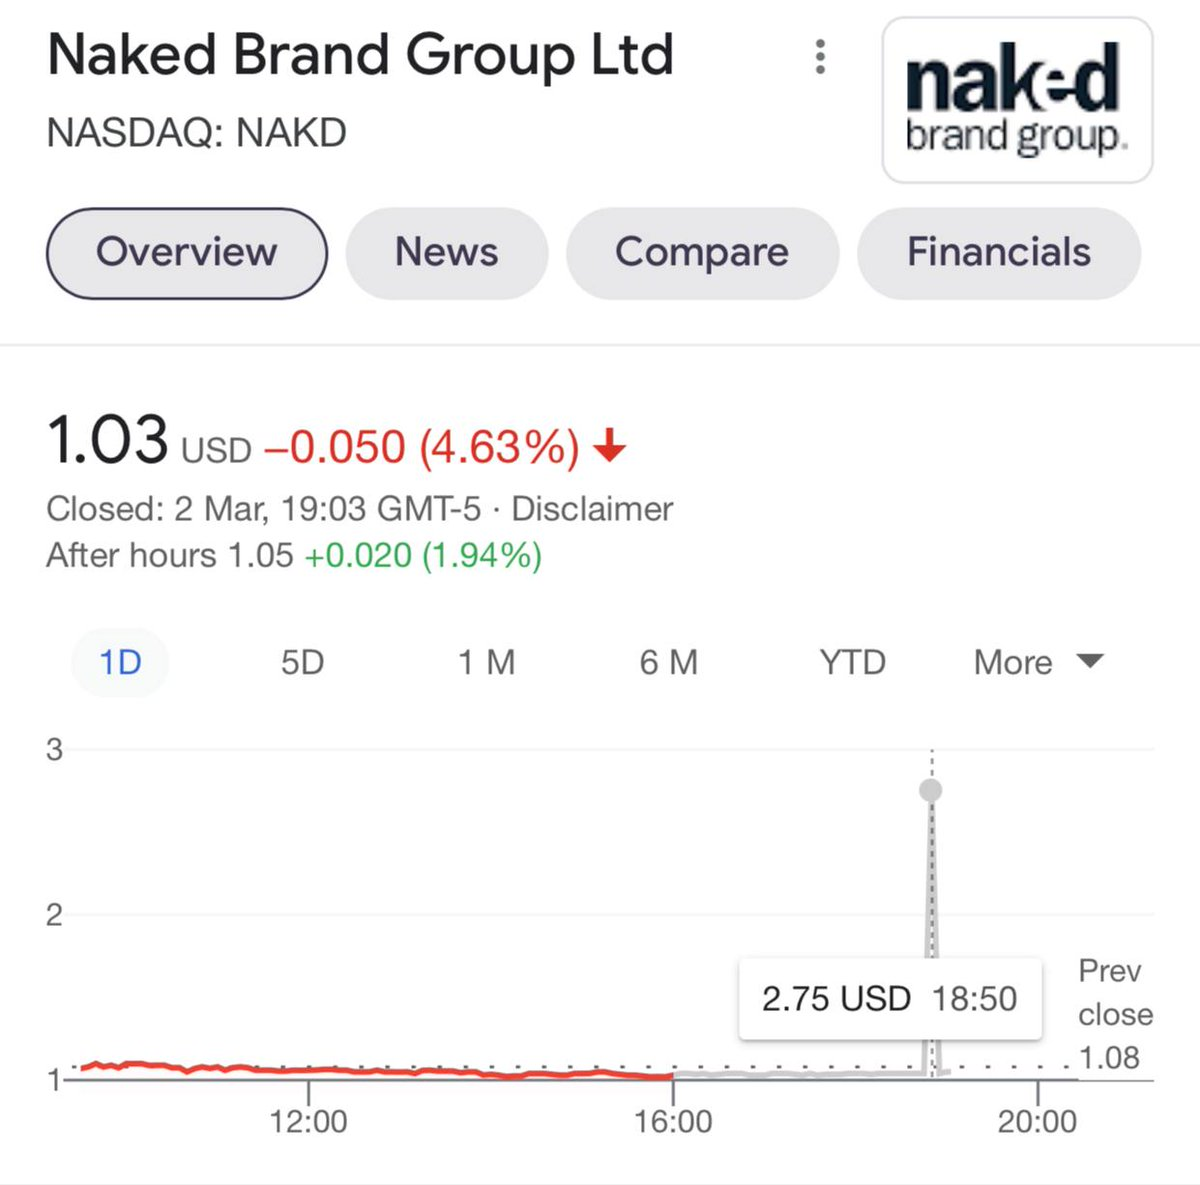 Third day in a row. After hours trading between??? 🤔🤔What is going on??? Glitch?? Every day?? Any traders who see it in their charts? #Traders $nakd #wallstreetsbets #stocks #hold #DiamondHands  It is NOT a fluke  Source: Google, Market watch, nasdaq 👀⚠️⚠️⚠️